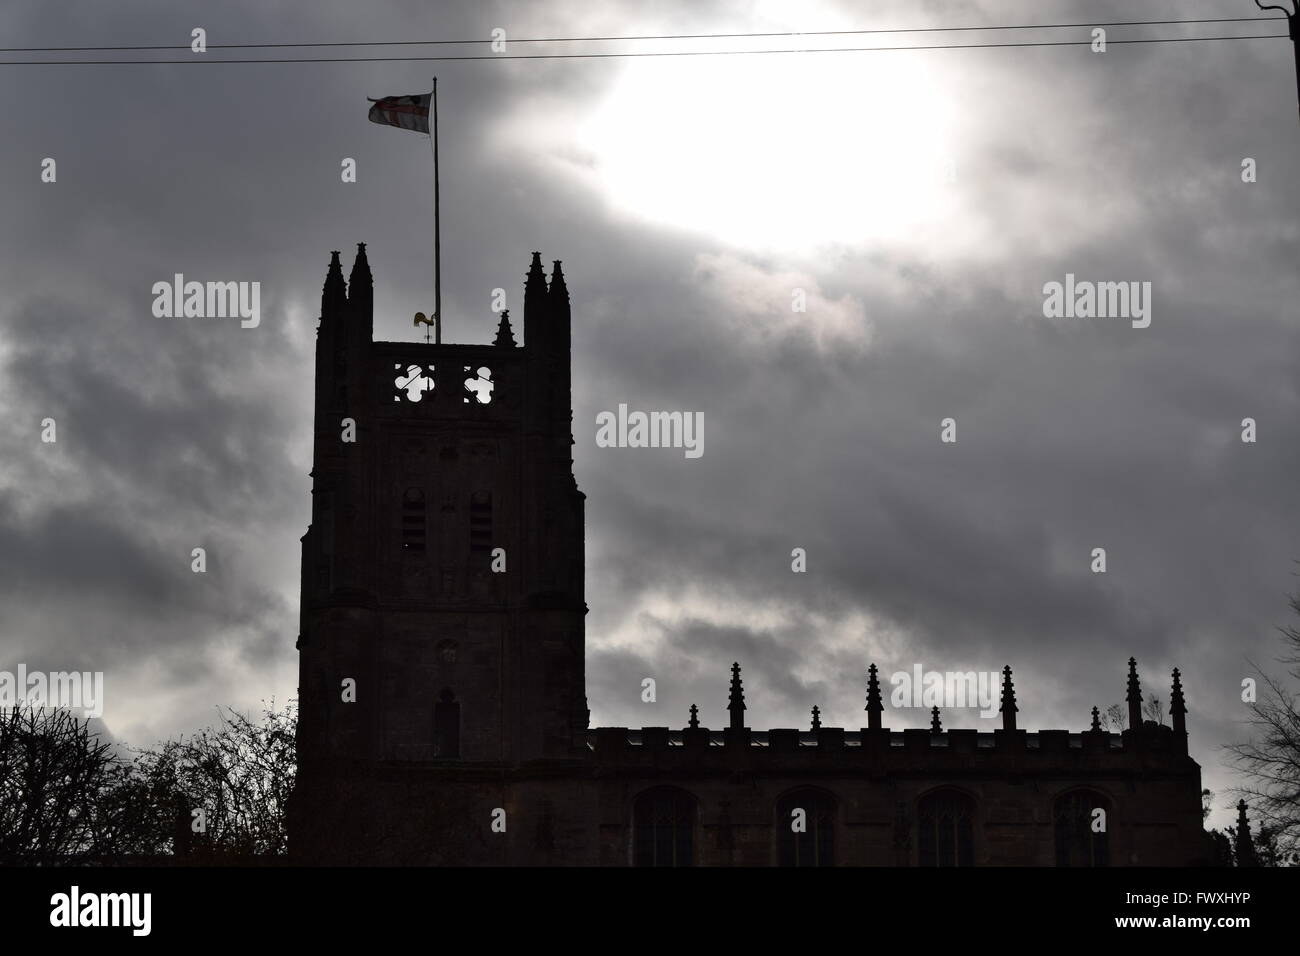 A nice silhouette of the local church in Fairford. - Stock Image